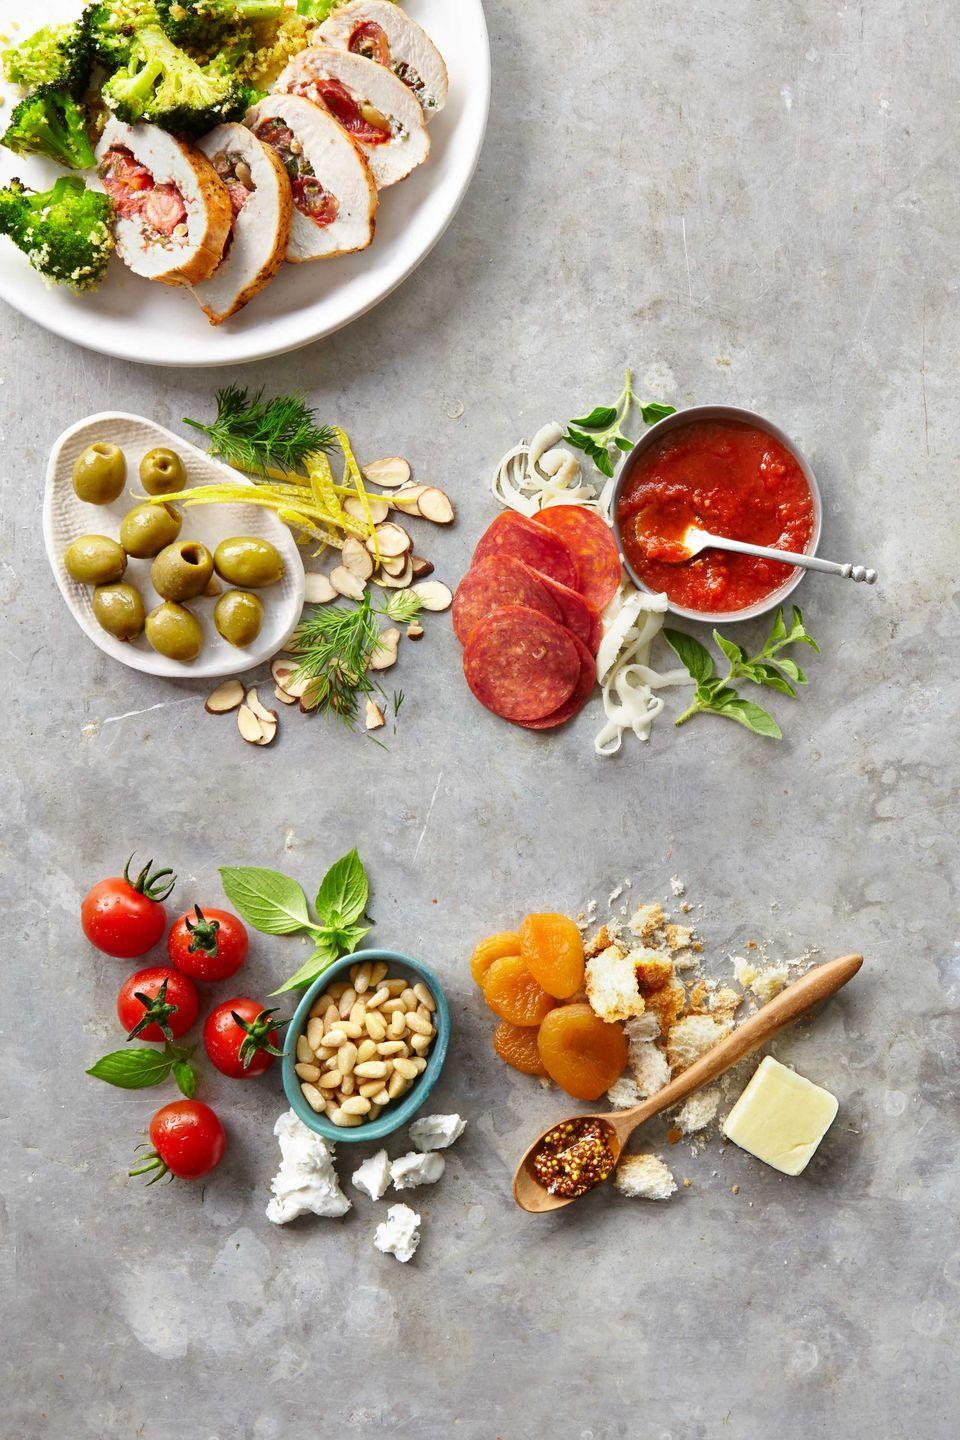 "<p>Give the weeknight staple an overhaul by stuffing it with one of these combos. (Each variation serves 4 and is ready in 30 minutes or less.)</p><p><a href=""https://www.countryliving.com/food-drinks/recipes/a39374/stuffed-chicken-4-ways-recipe/"" rel=""nofollow noopener"" target=""_blank"" data-ylk=""slk:Get the recipe."" class=""link rapid-noclick-resp""><strong>Get the recipe.</strong></a></p>"